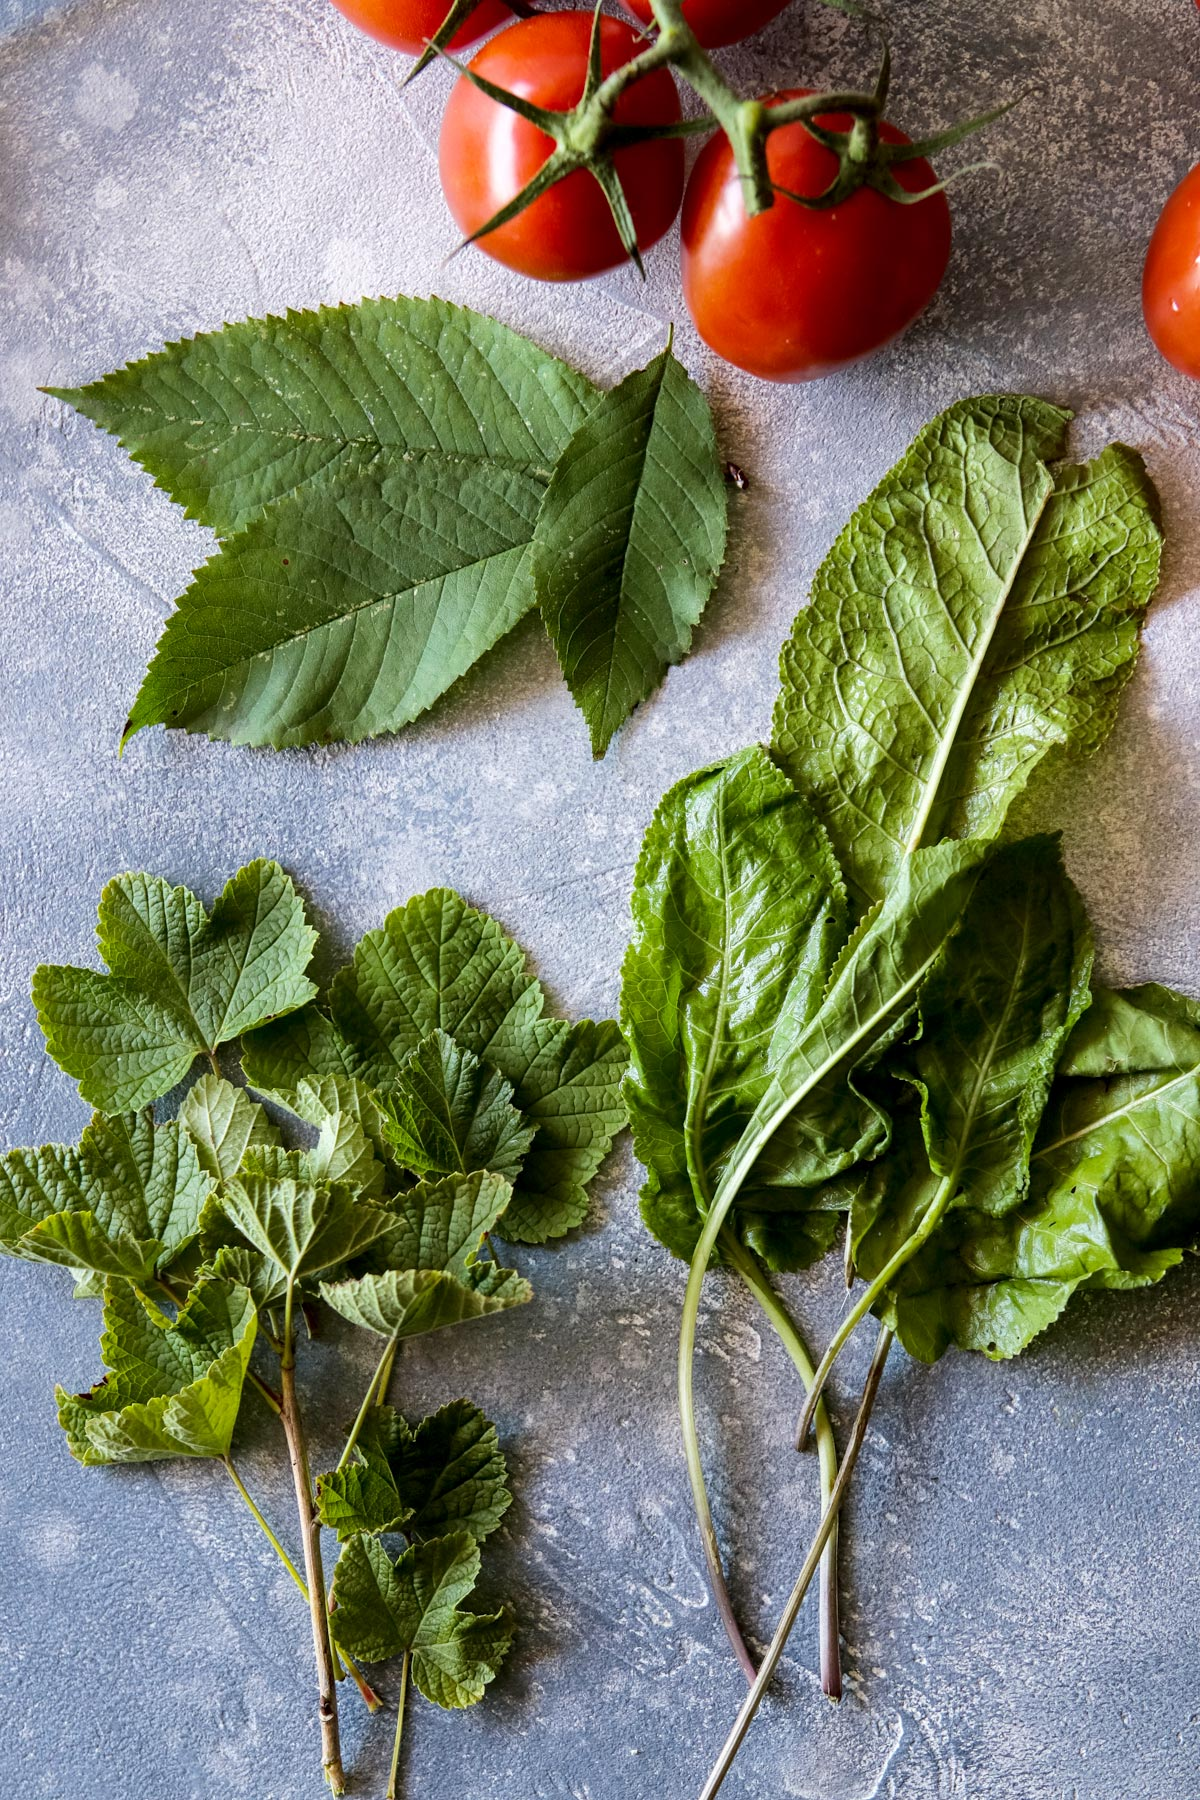 Additional herbs for pickled tomatoes.